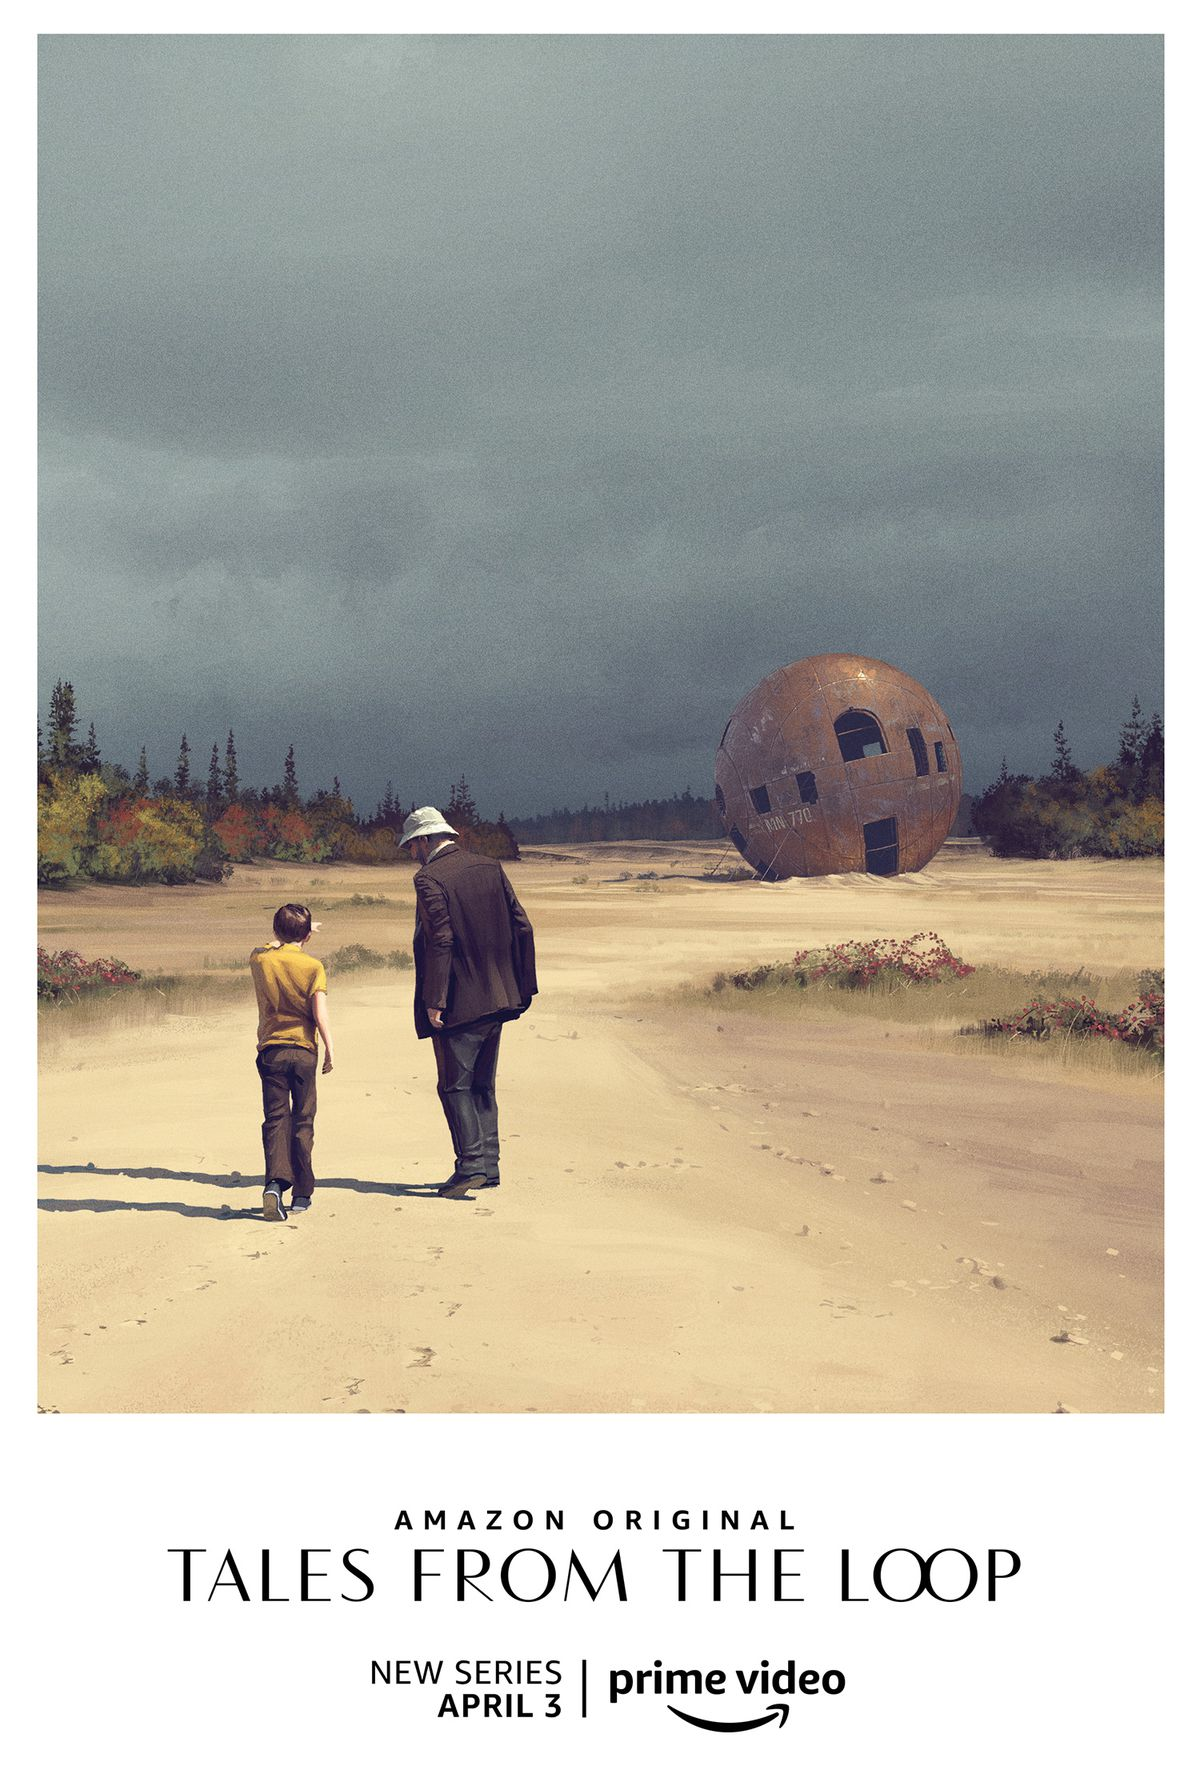 A father and son walk towards a rusted out sphere in a sandy river bed.